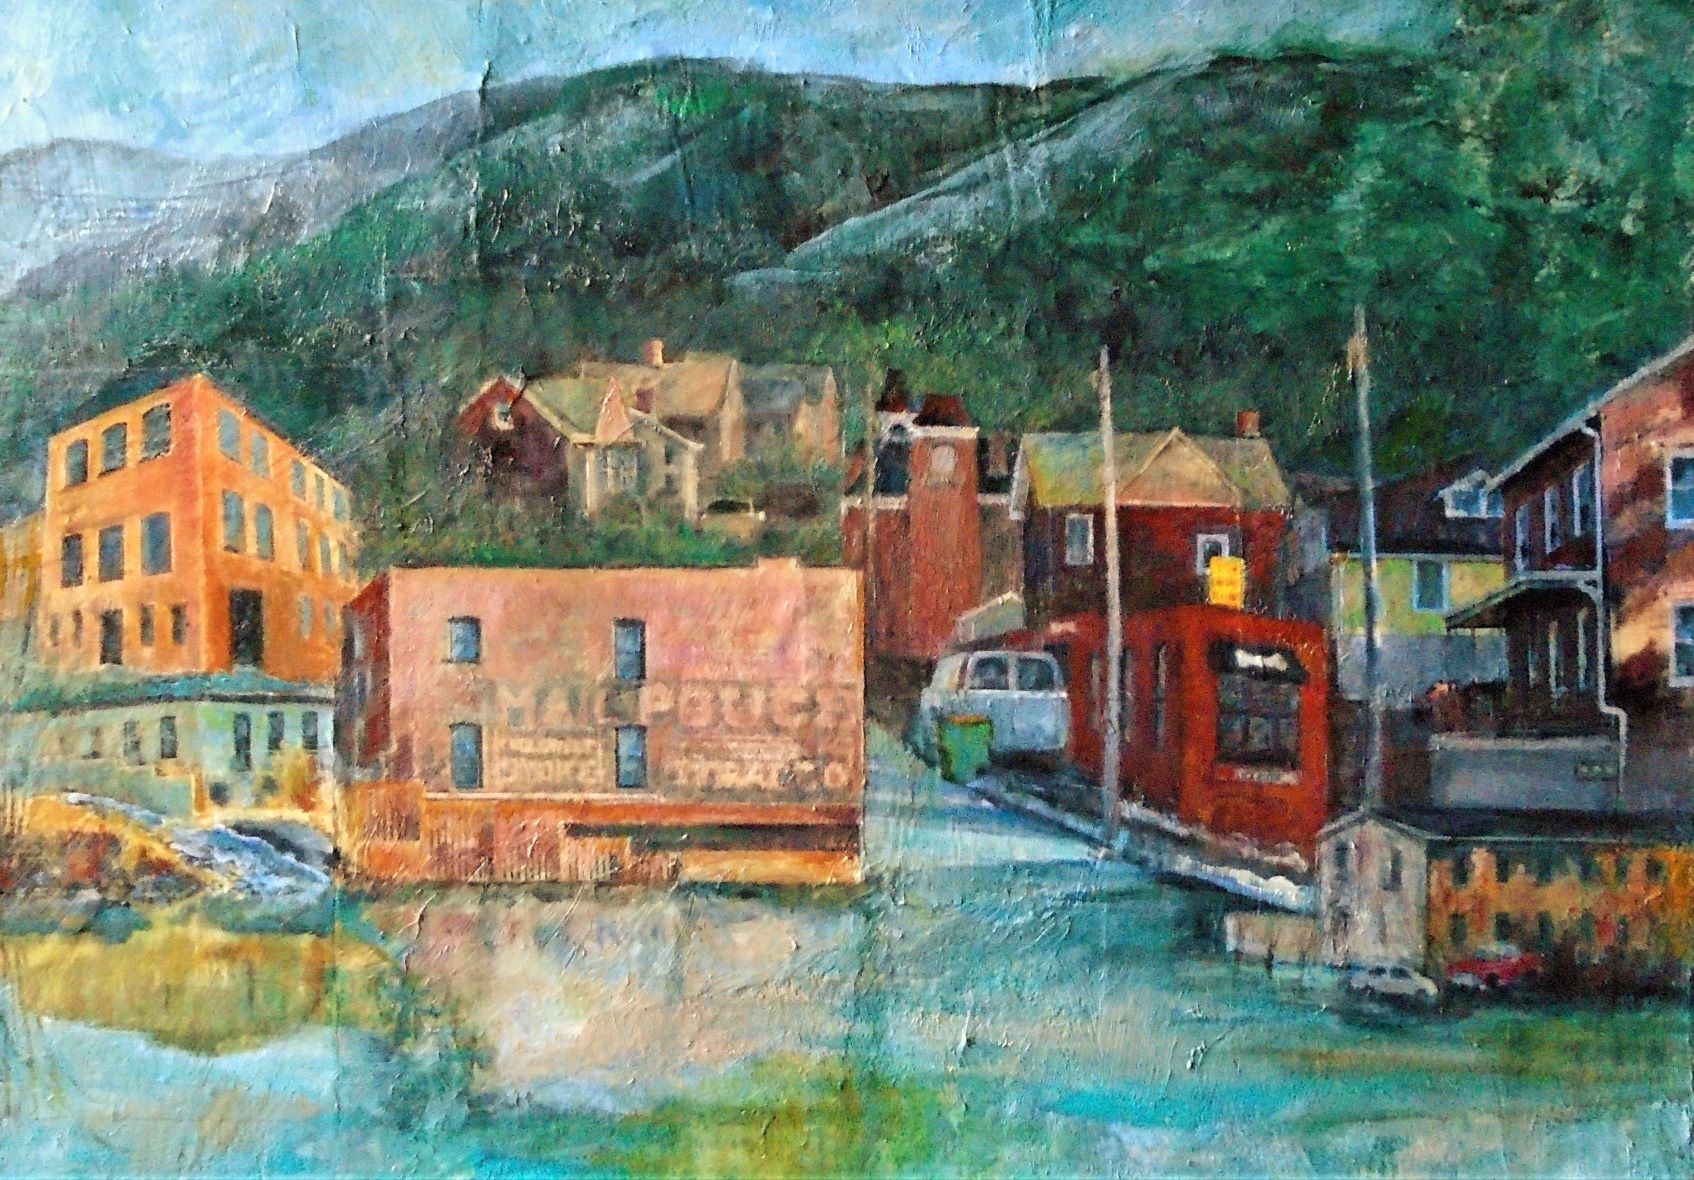 East Main Views of Beacon, NY, collage, acrylic,oil